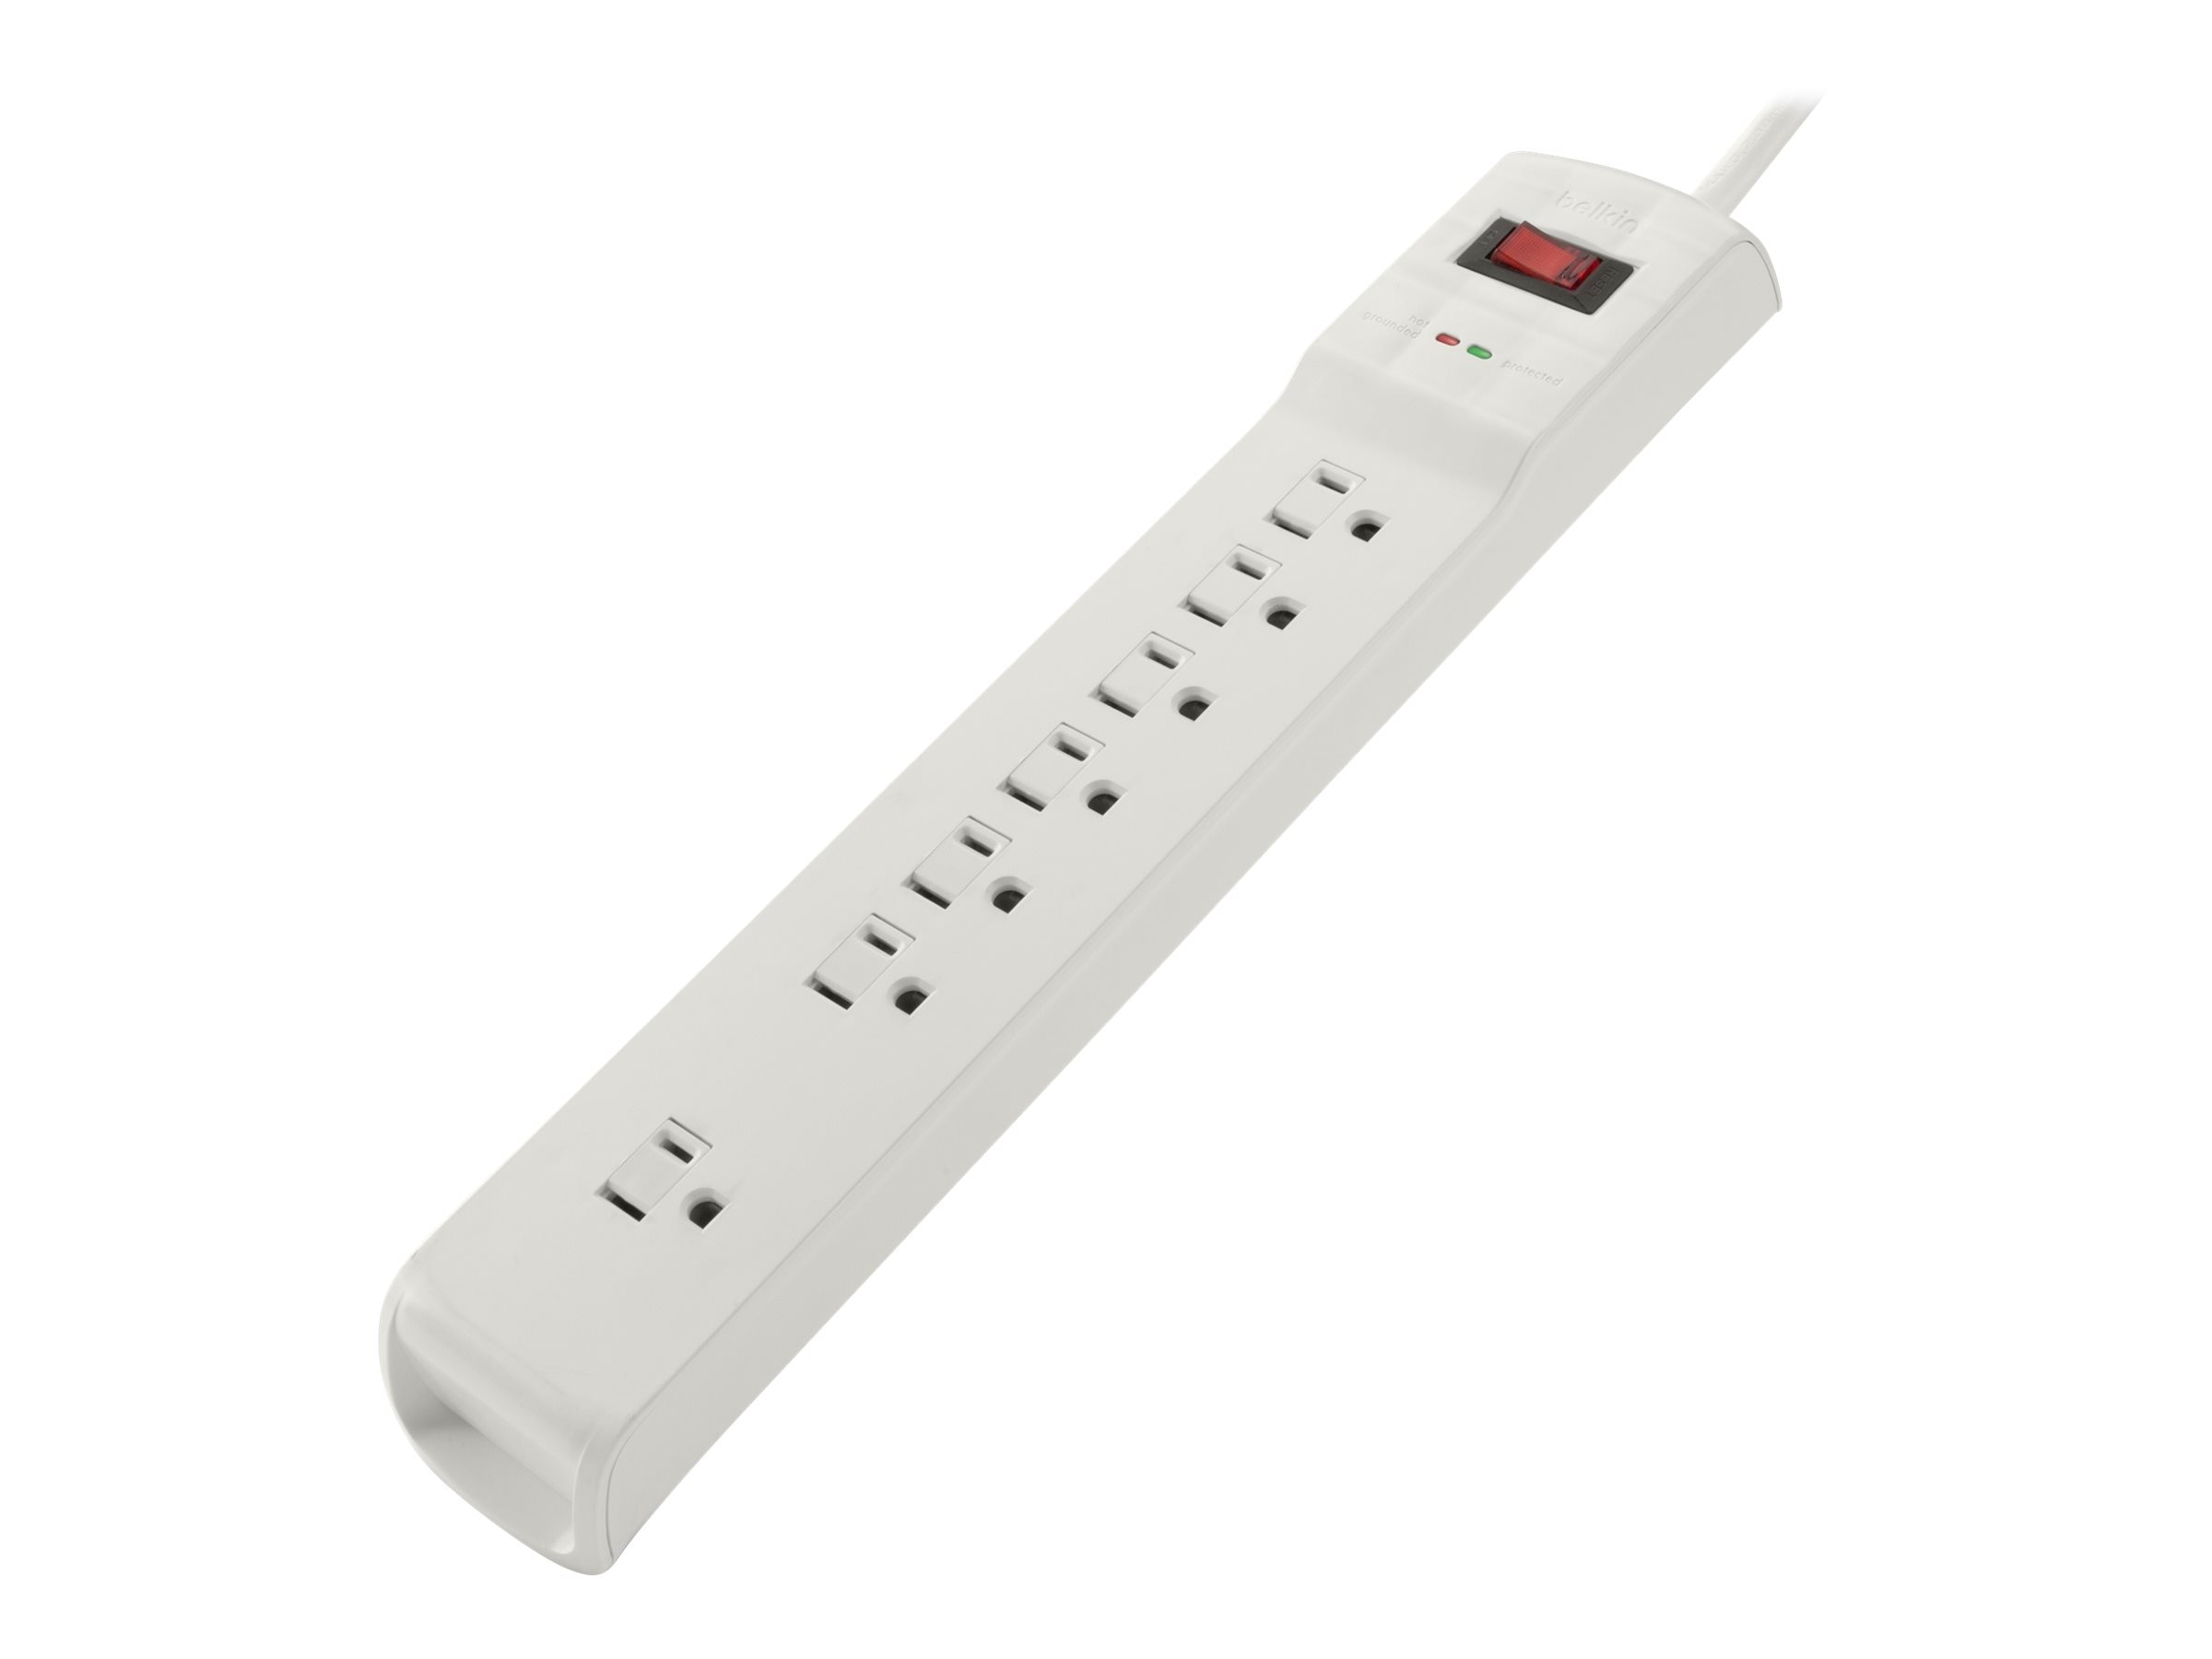 Belkin Surge Protector (7) Outlets, 2100 Joules, 6-foot Power Cord, White, BSQ700BG06-DP, 20593923, Surge Suppressors